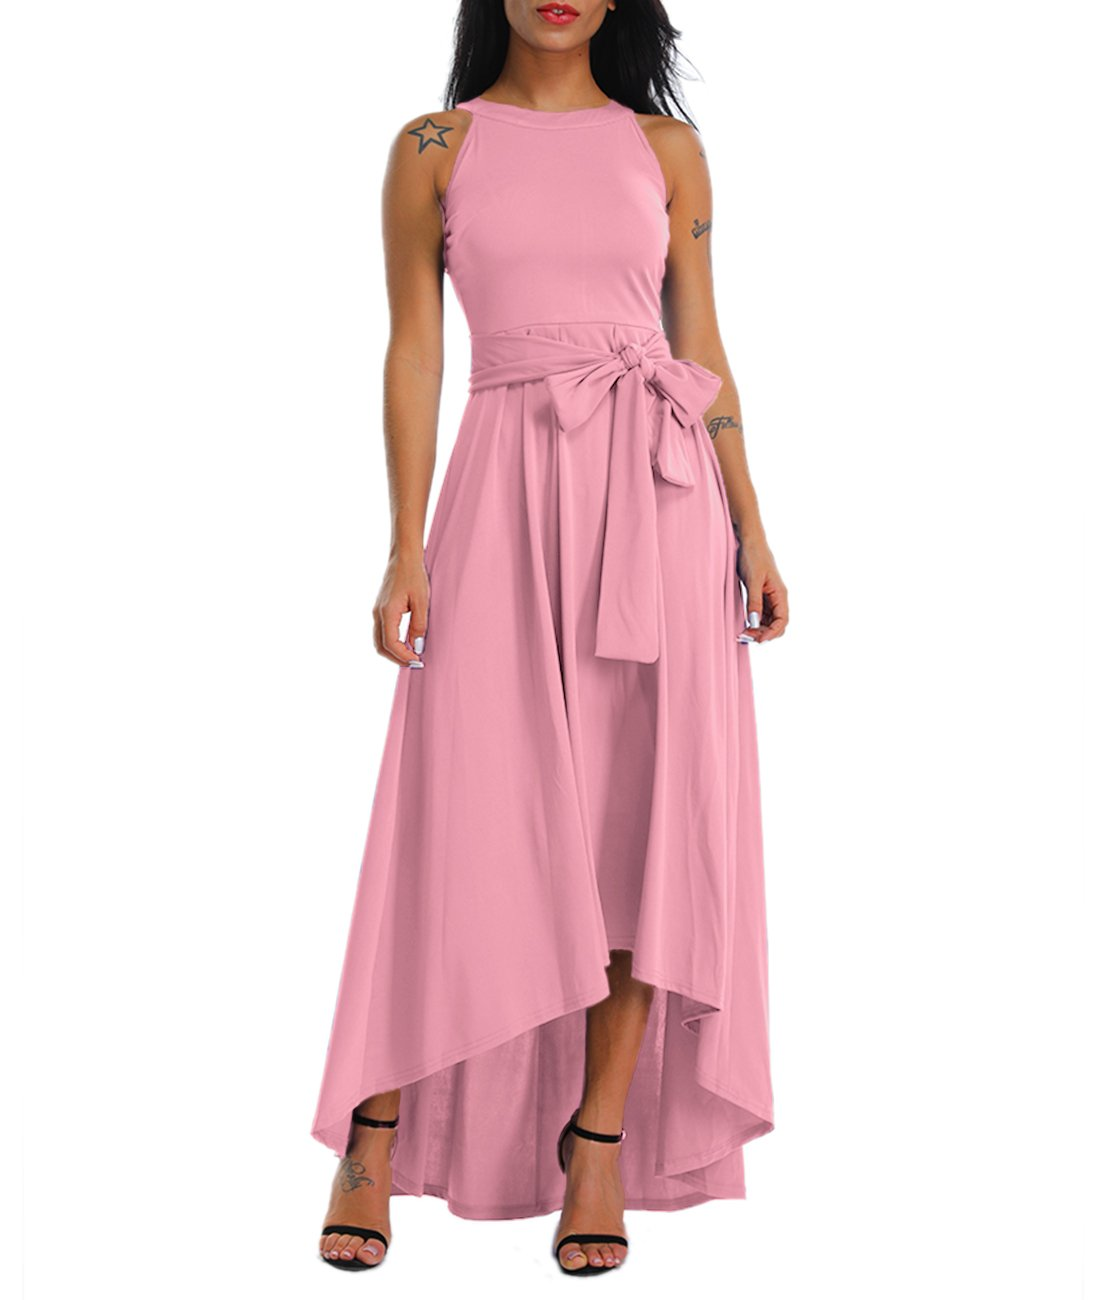 Lalagen Womens Plus Size Sleeveless Belted Party Maxi Dress with Cardigan by Lalagen (Image #1)